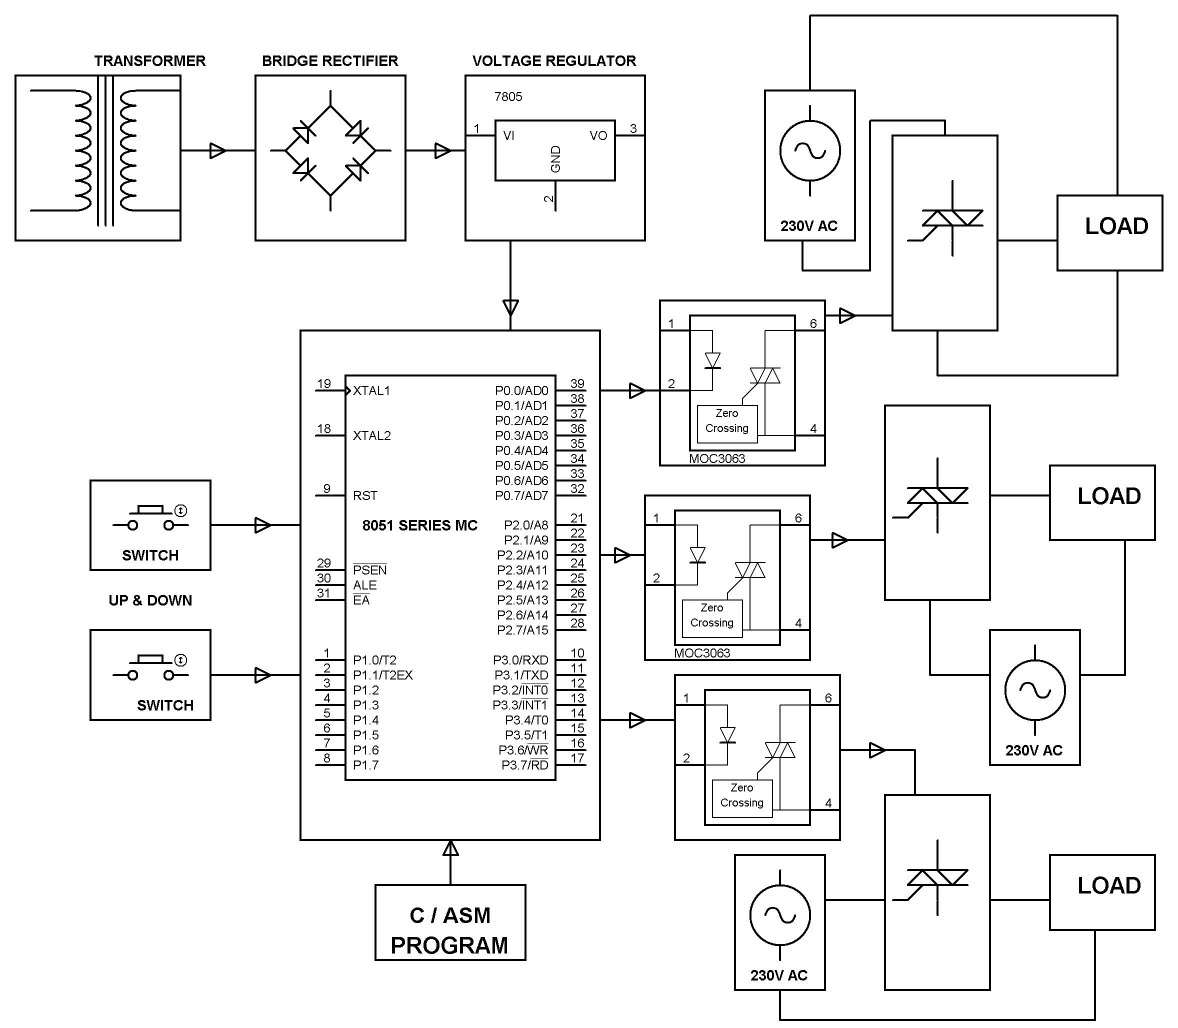 Solid state relays three phase solid state relay with zvs three phase solid state relay with zvs project block diagram by edgefxkits asfbconference2016 Images